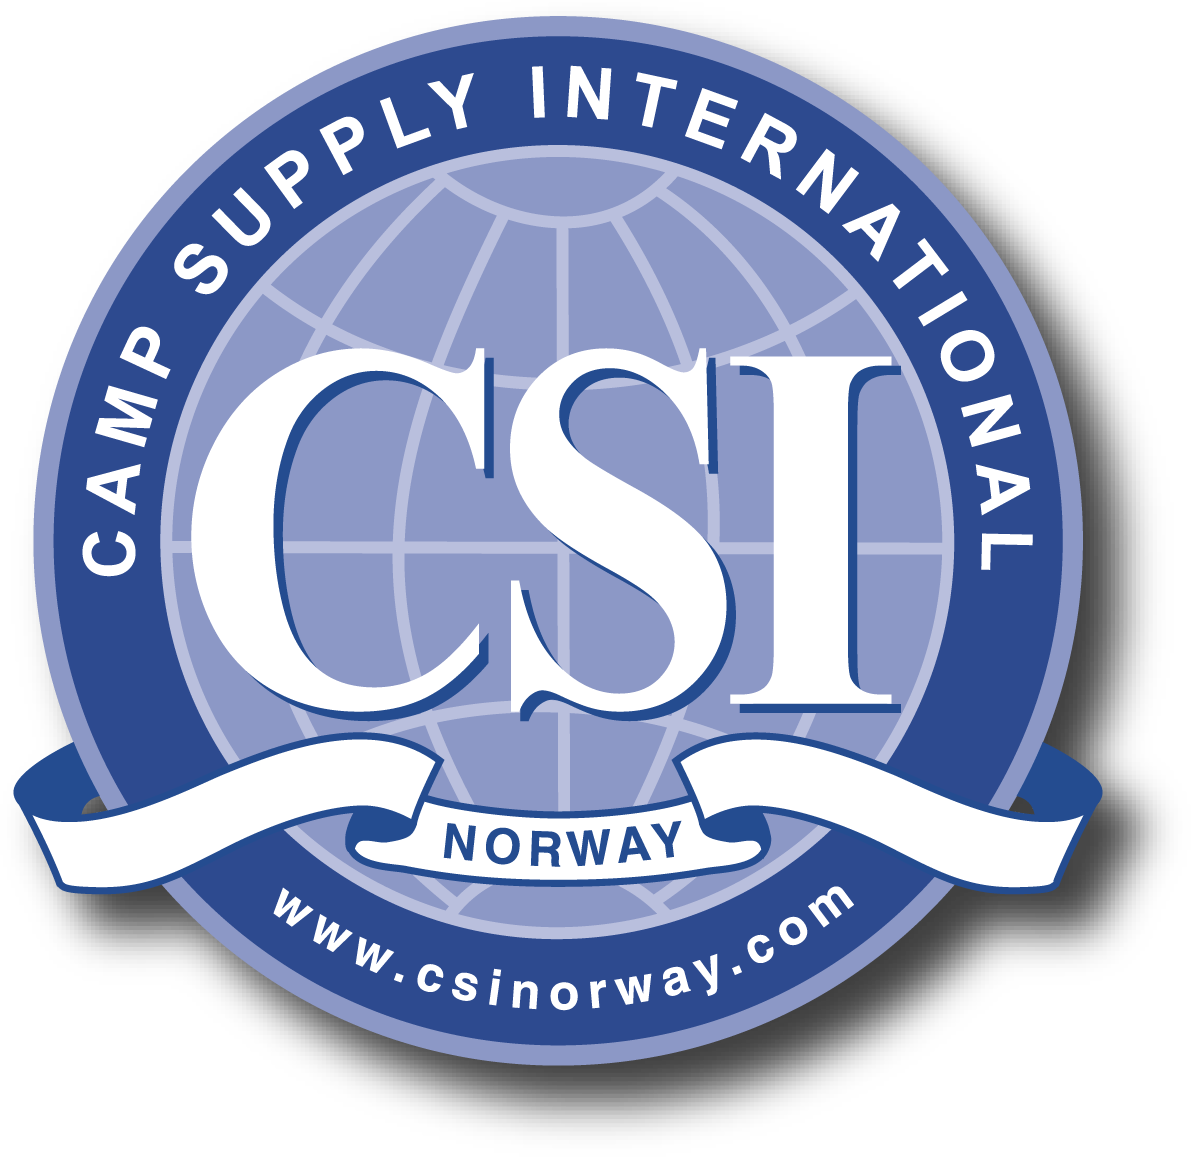 CSI norway